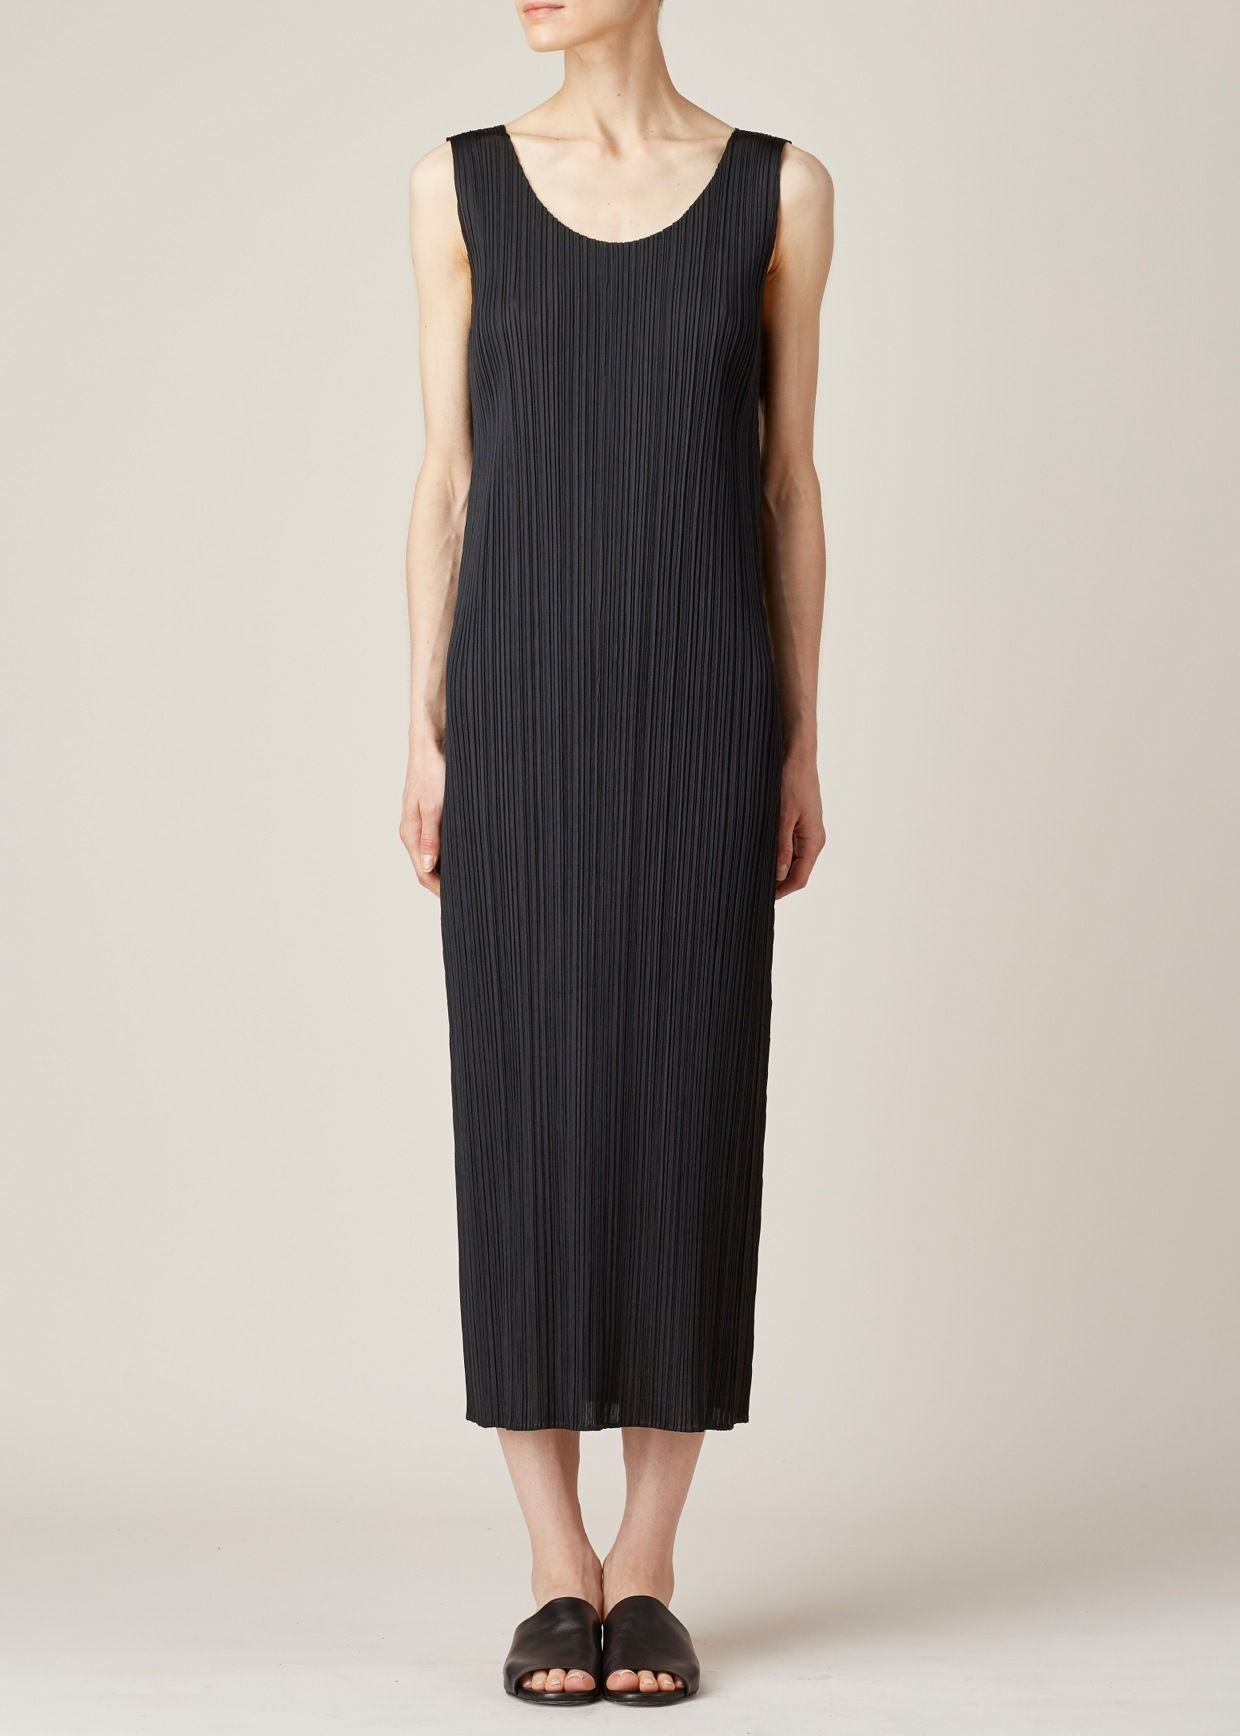 5f006d138e09f Totokaelo - Issey Miyake PLEATS PLEASE Black Tank Dress